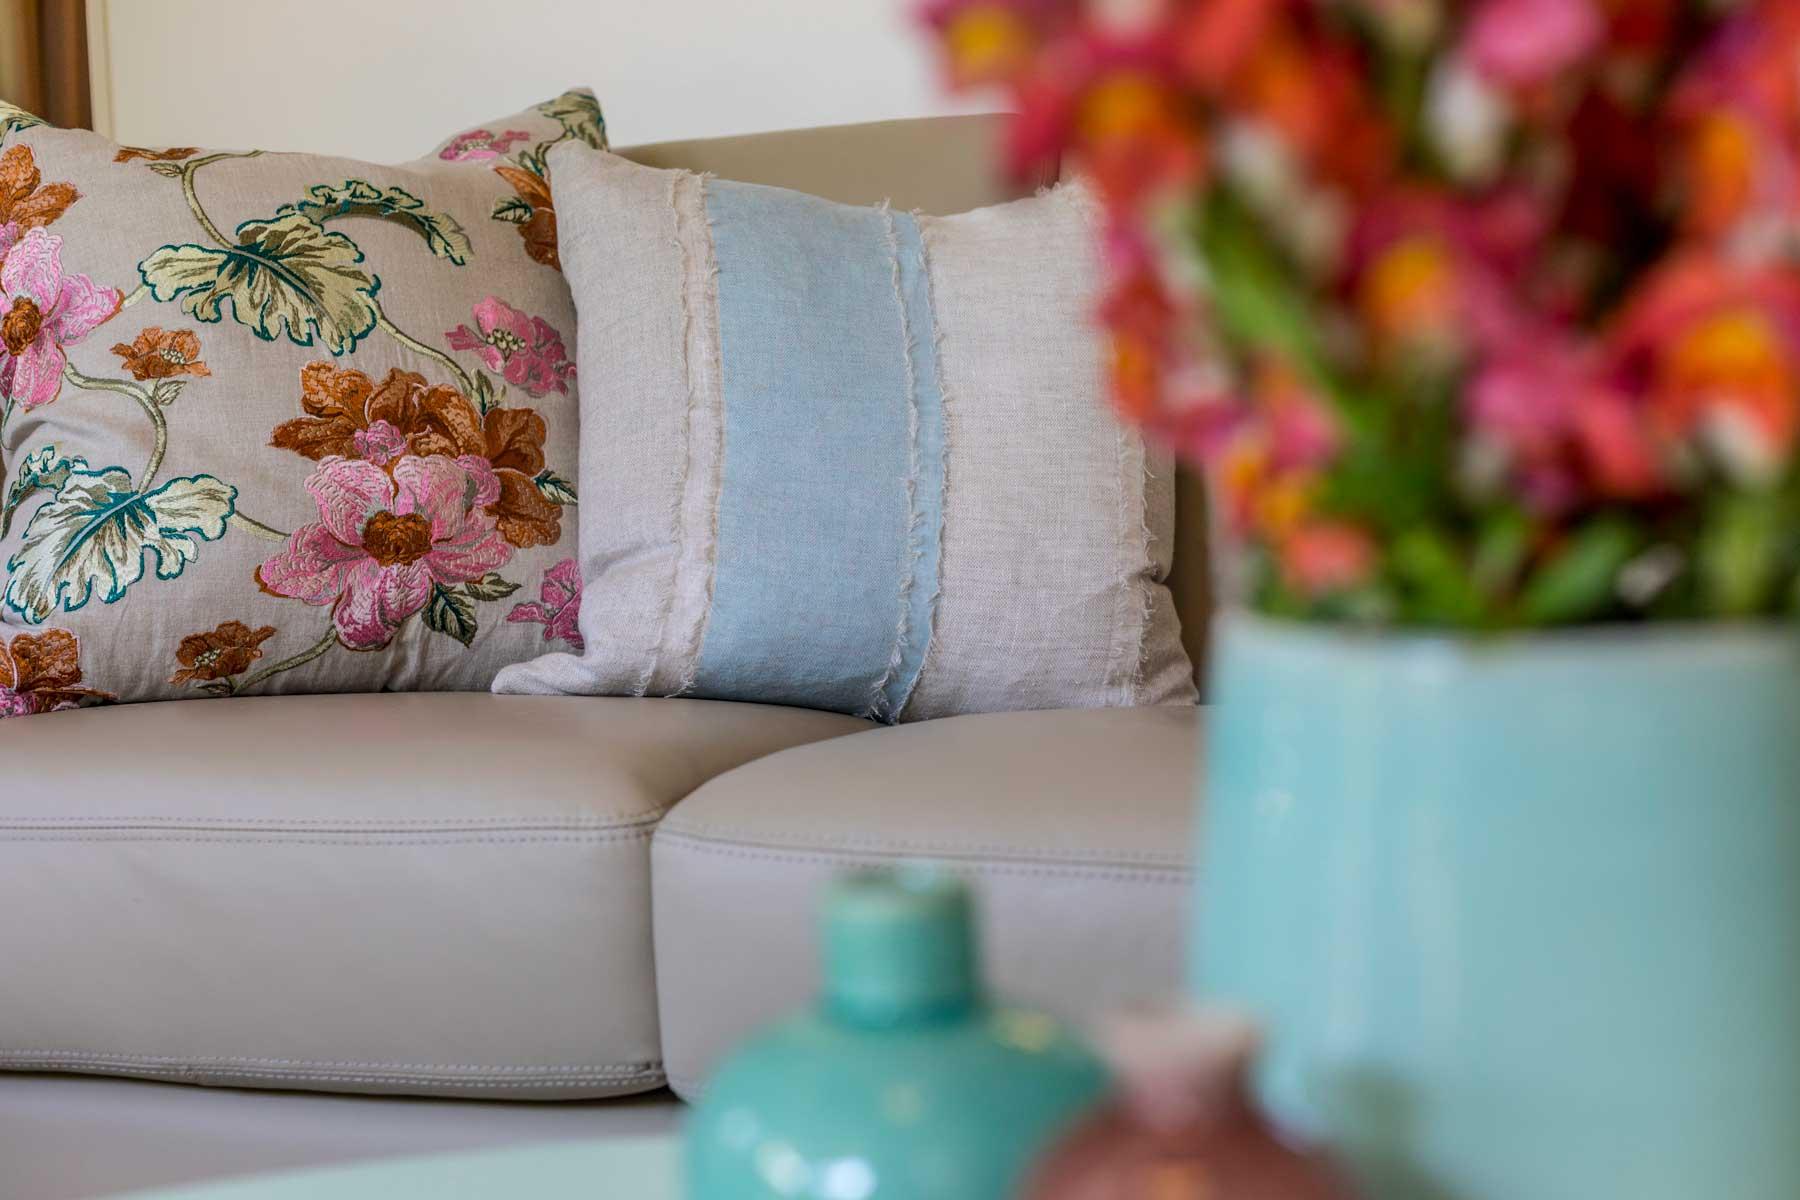 Robyn's vibrant beach apartment - after - floral cushions